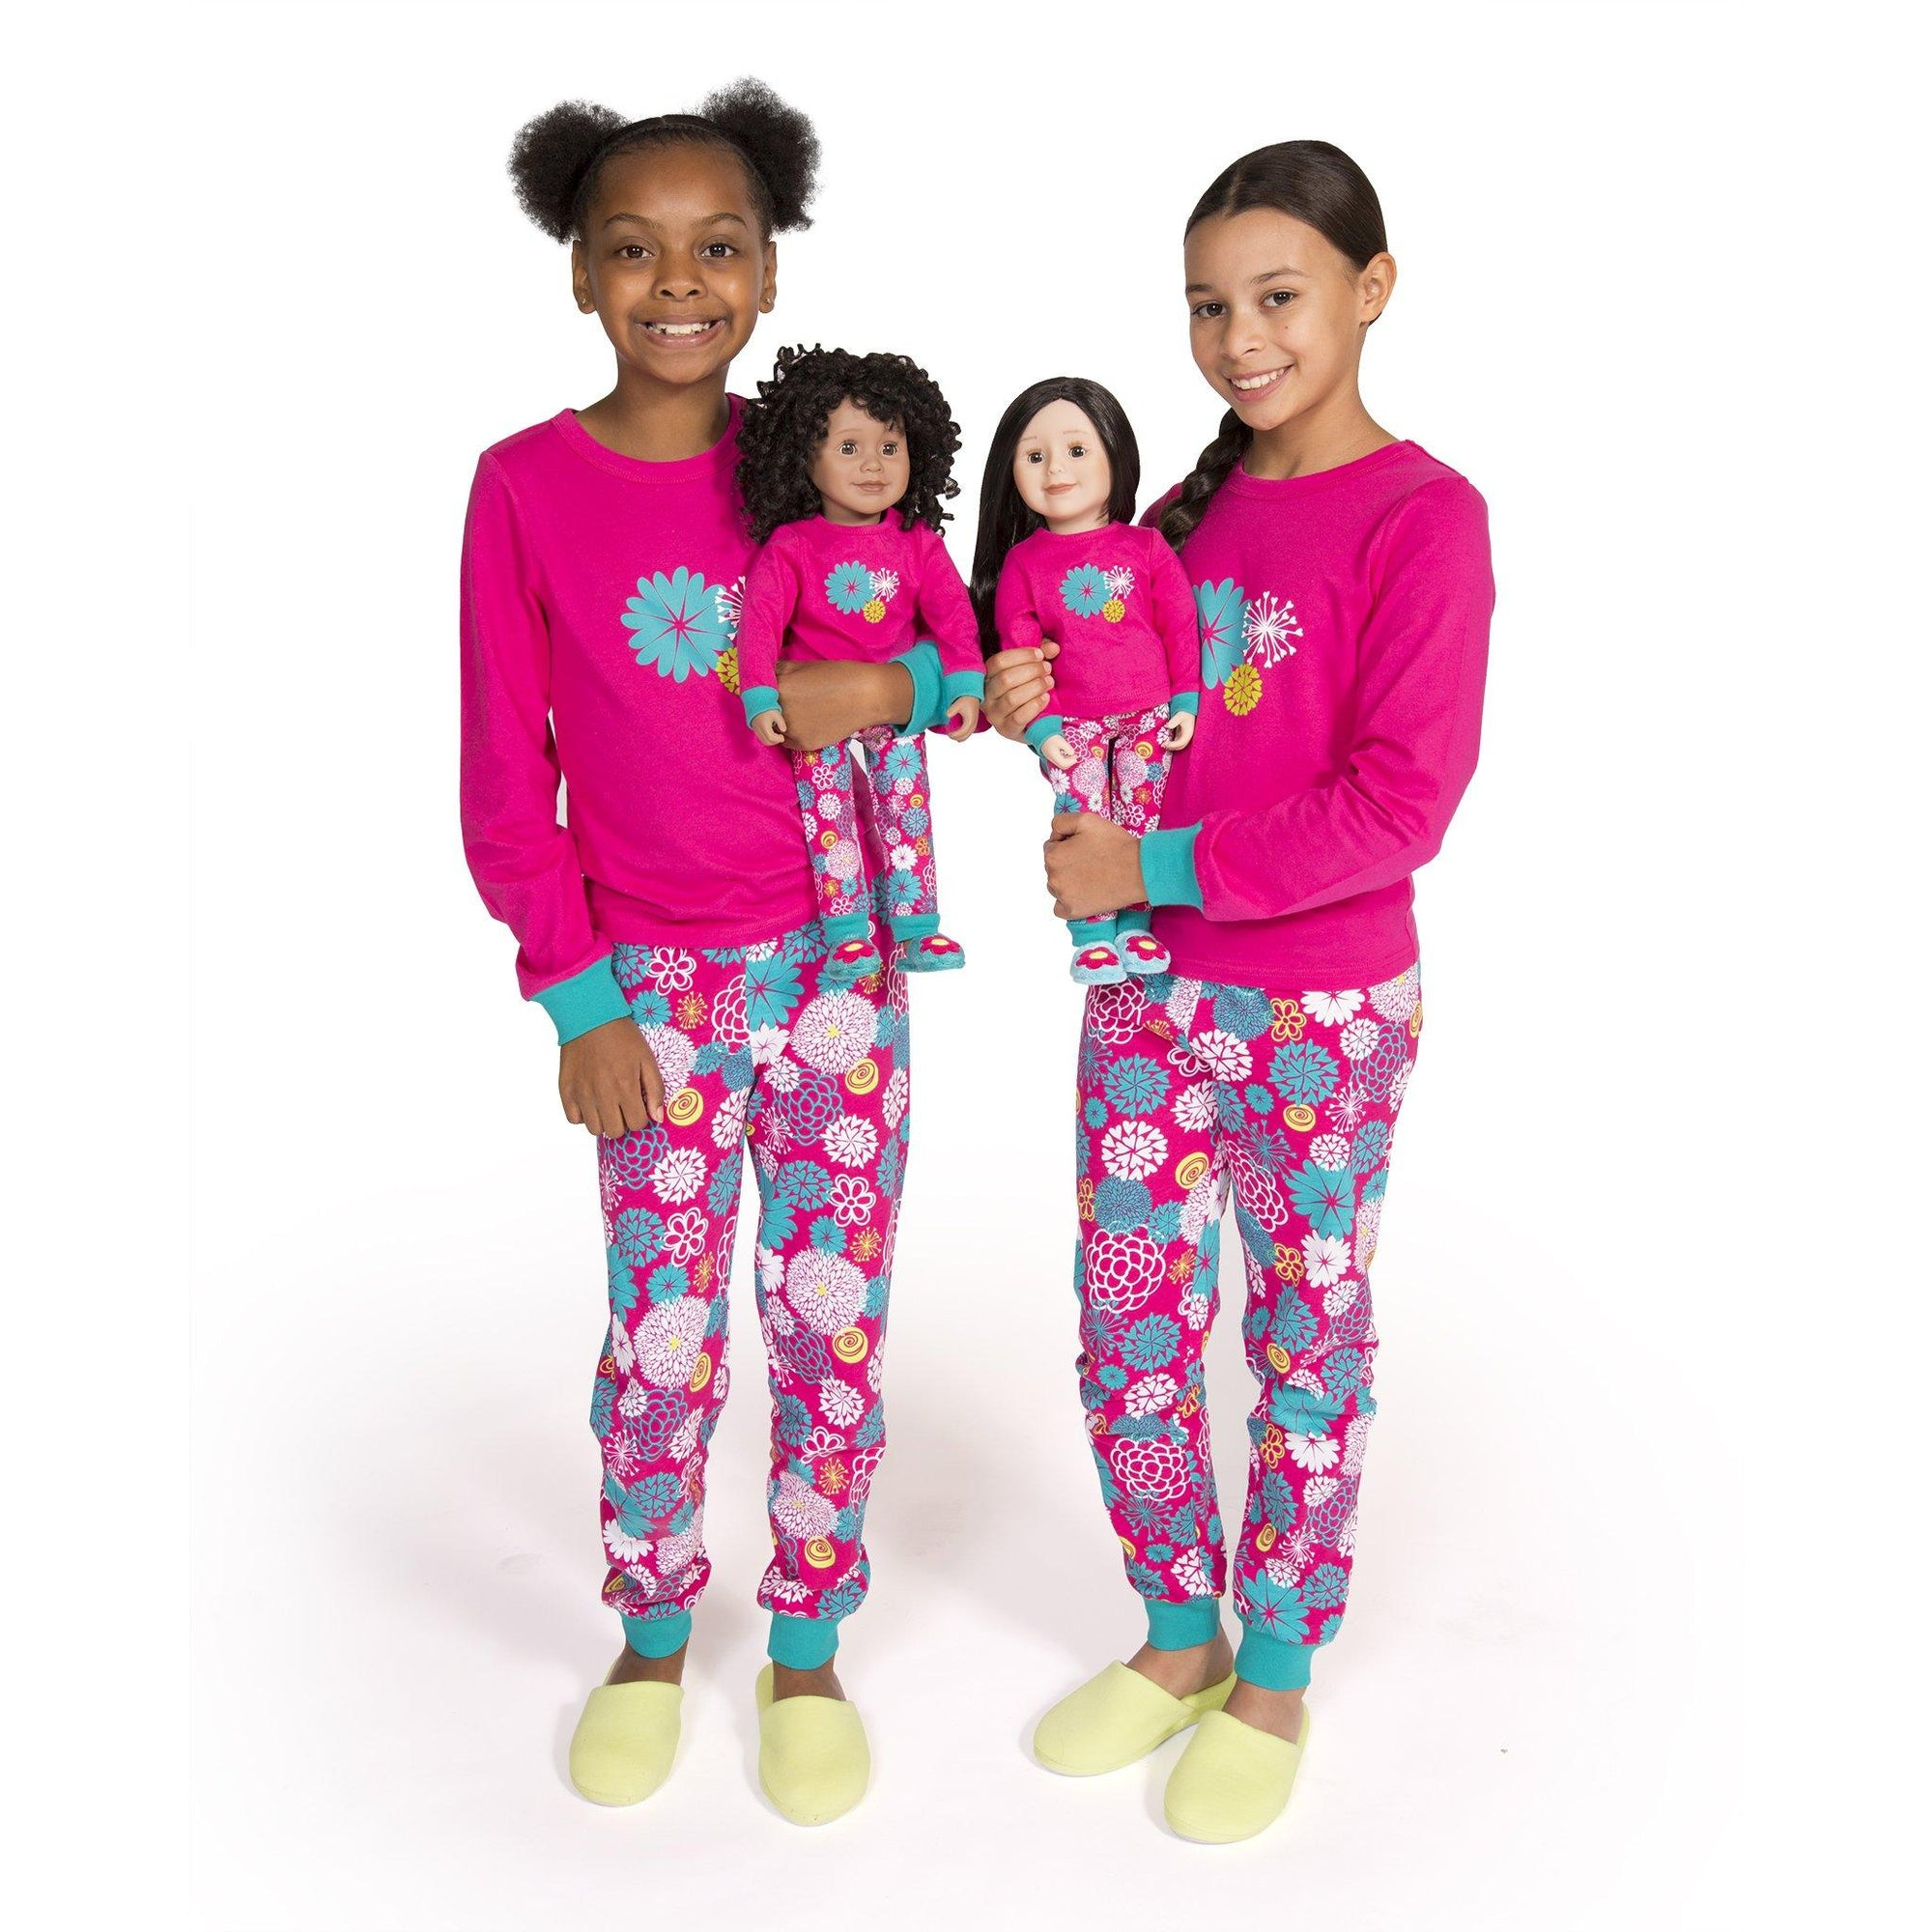 Two girls and two 18 inch dolls wearing matching pajamas from Maplelea Canadian Girl.